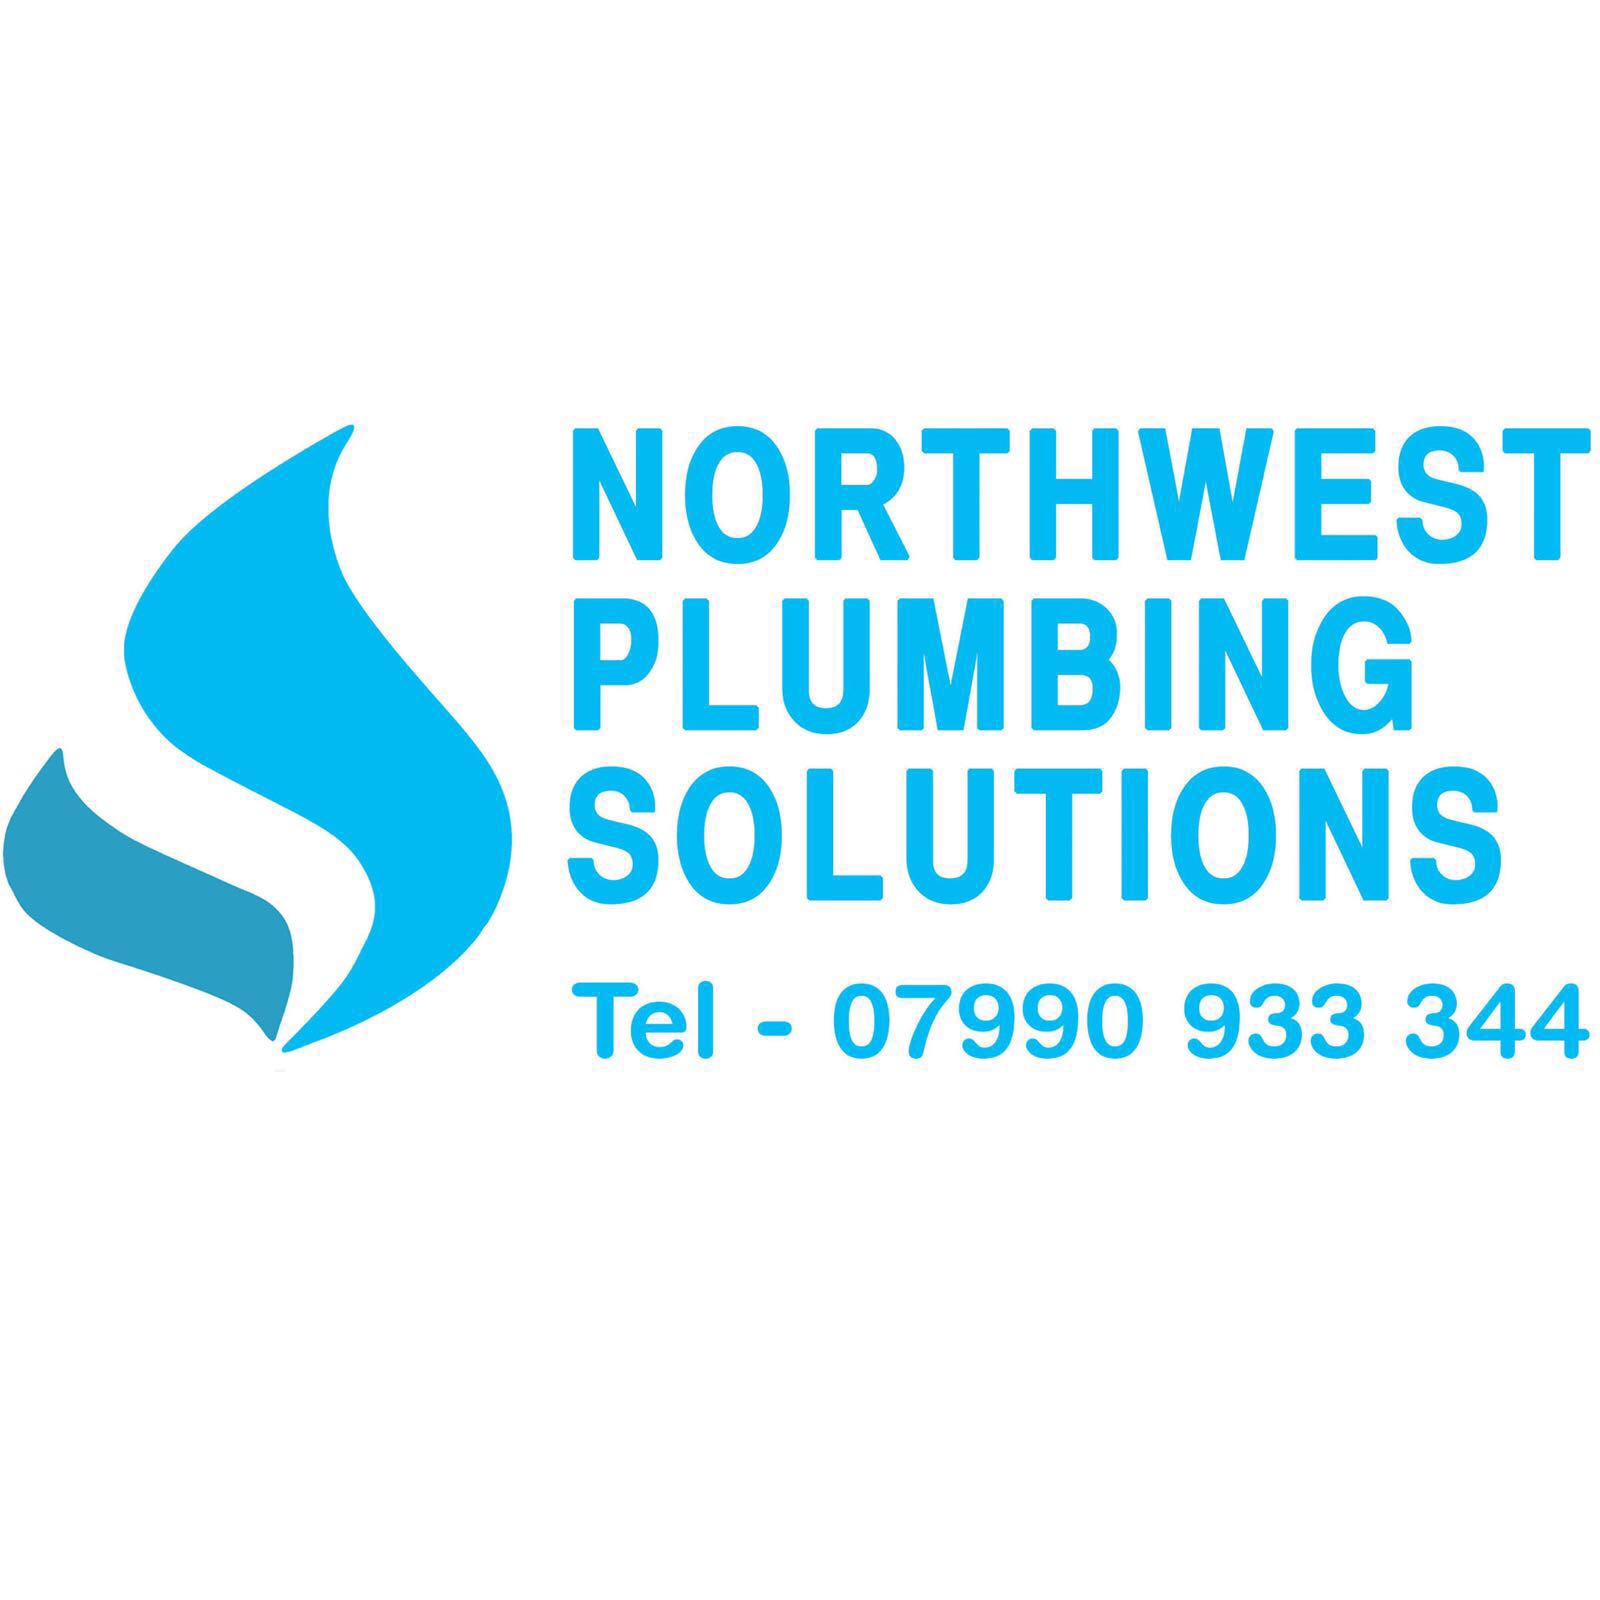 Northwest Plumbing Solutions